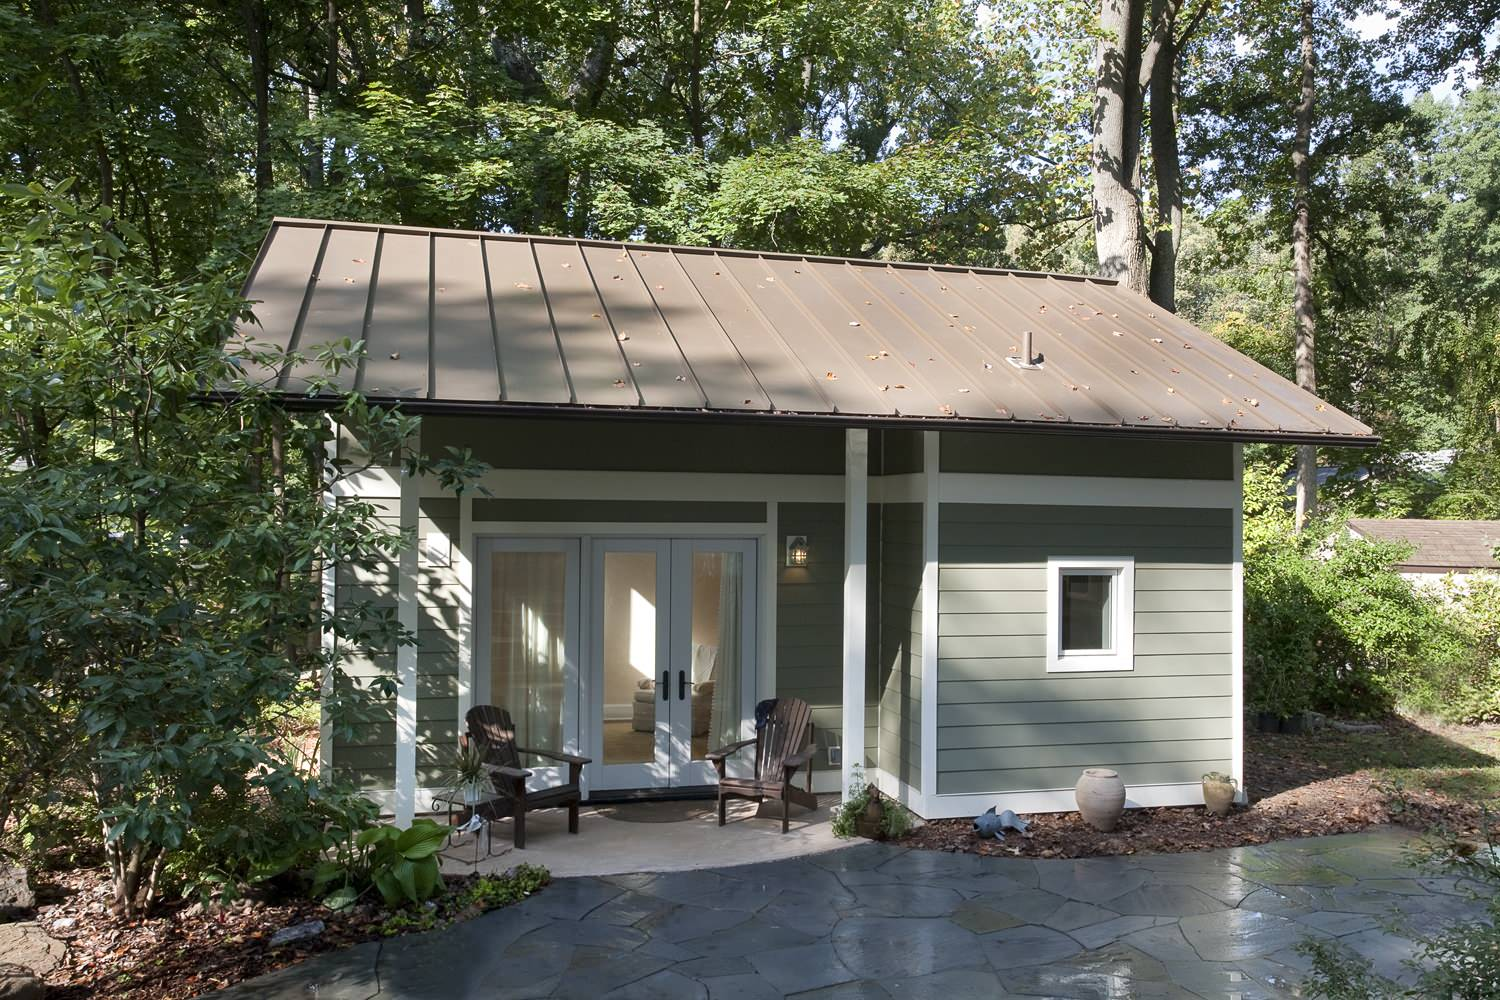 Small is the new big quaint little guest house is cute for Cute small homes